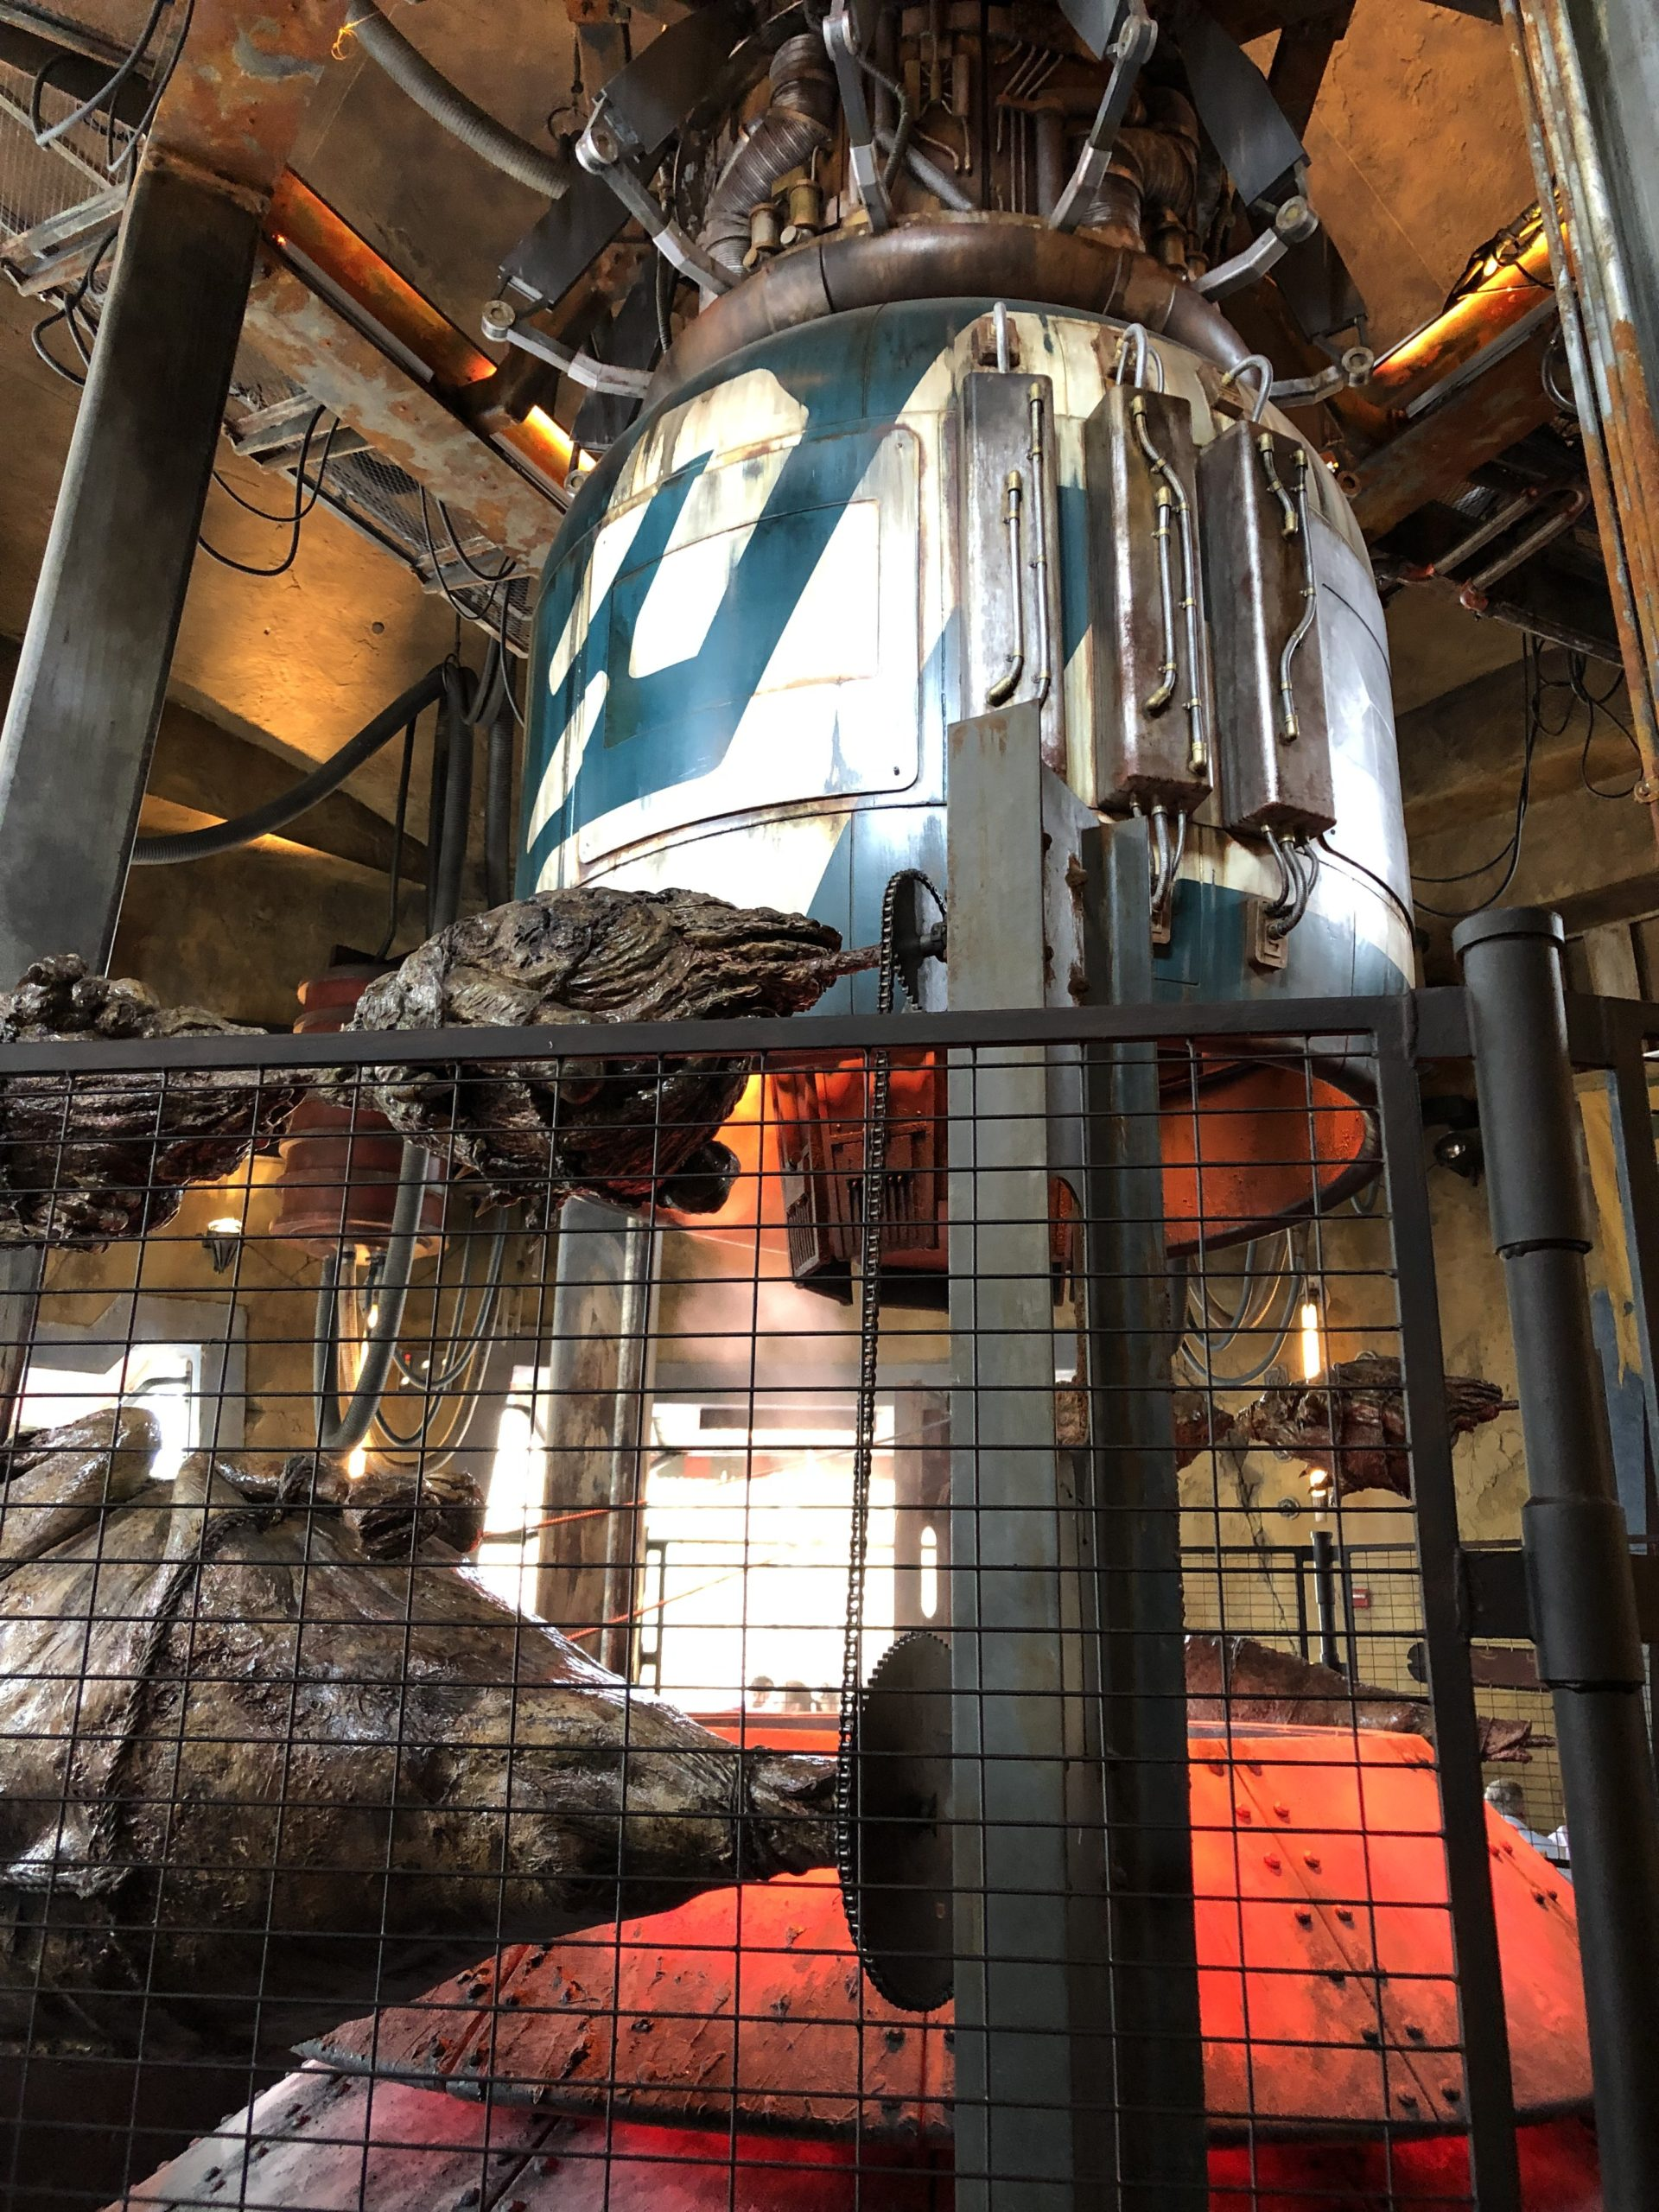 The podracer engine that roasts the meat at Ronto Roasters